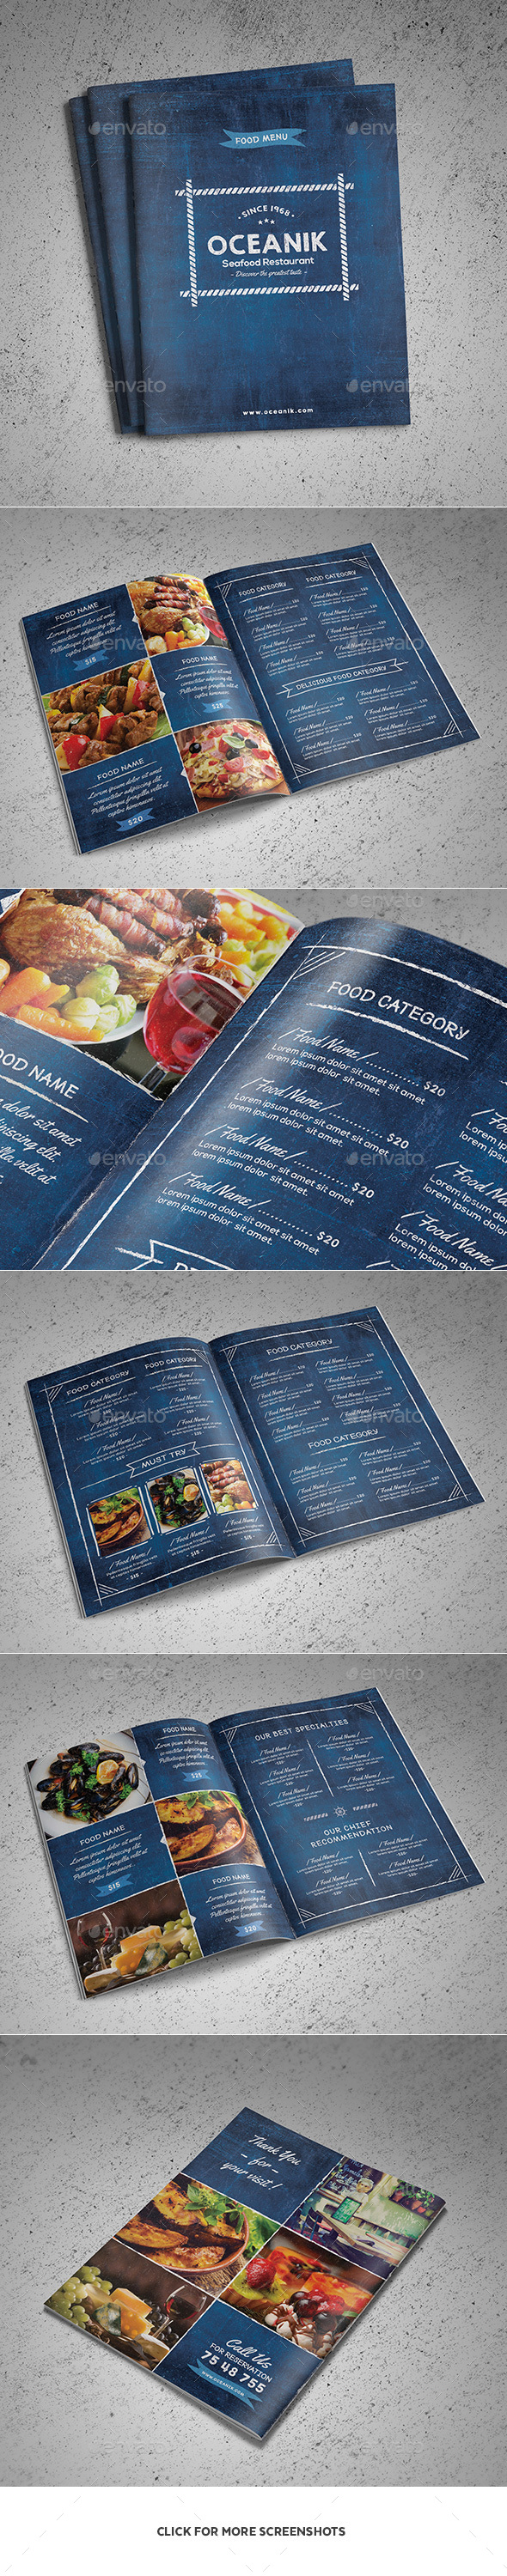 Oceanik Restaurant Menu - 8 Pages - Food Menus Print Templates